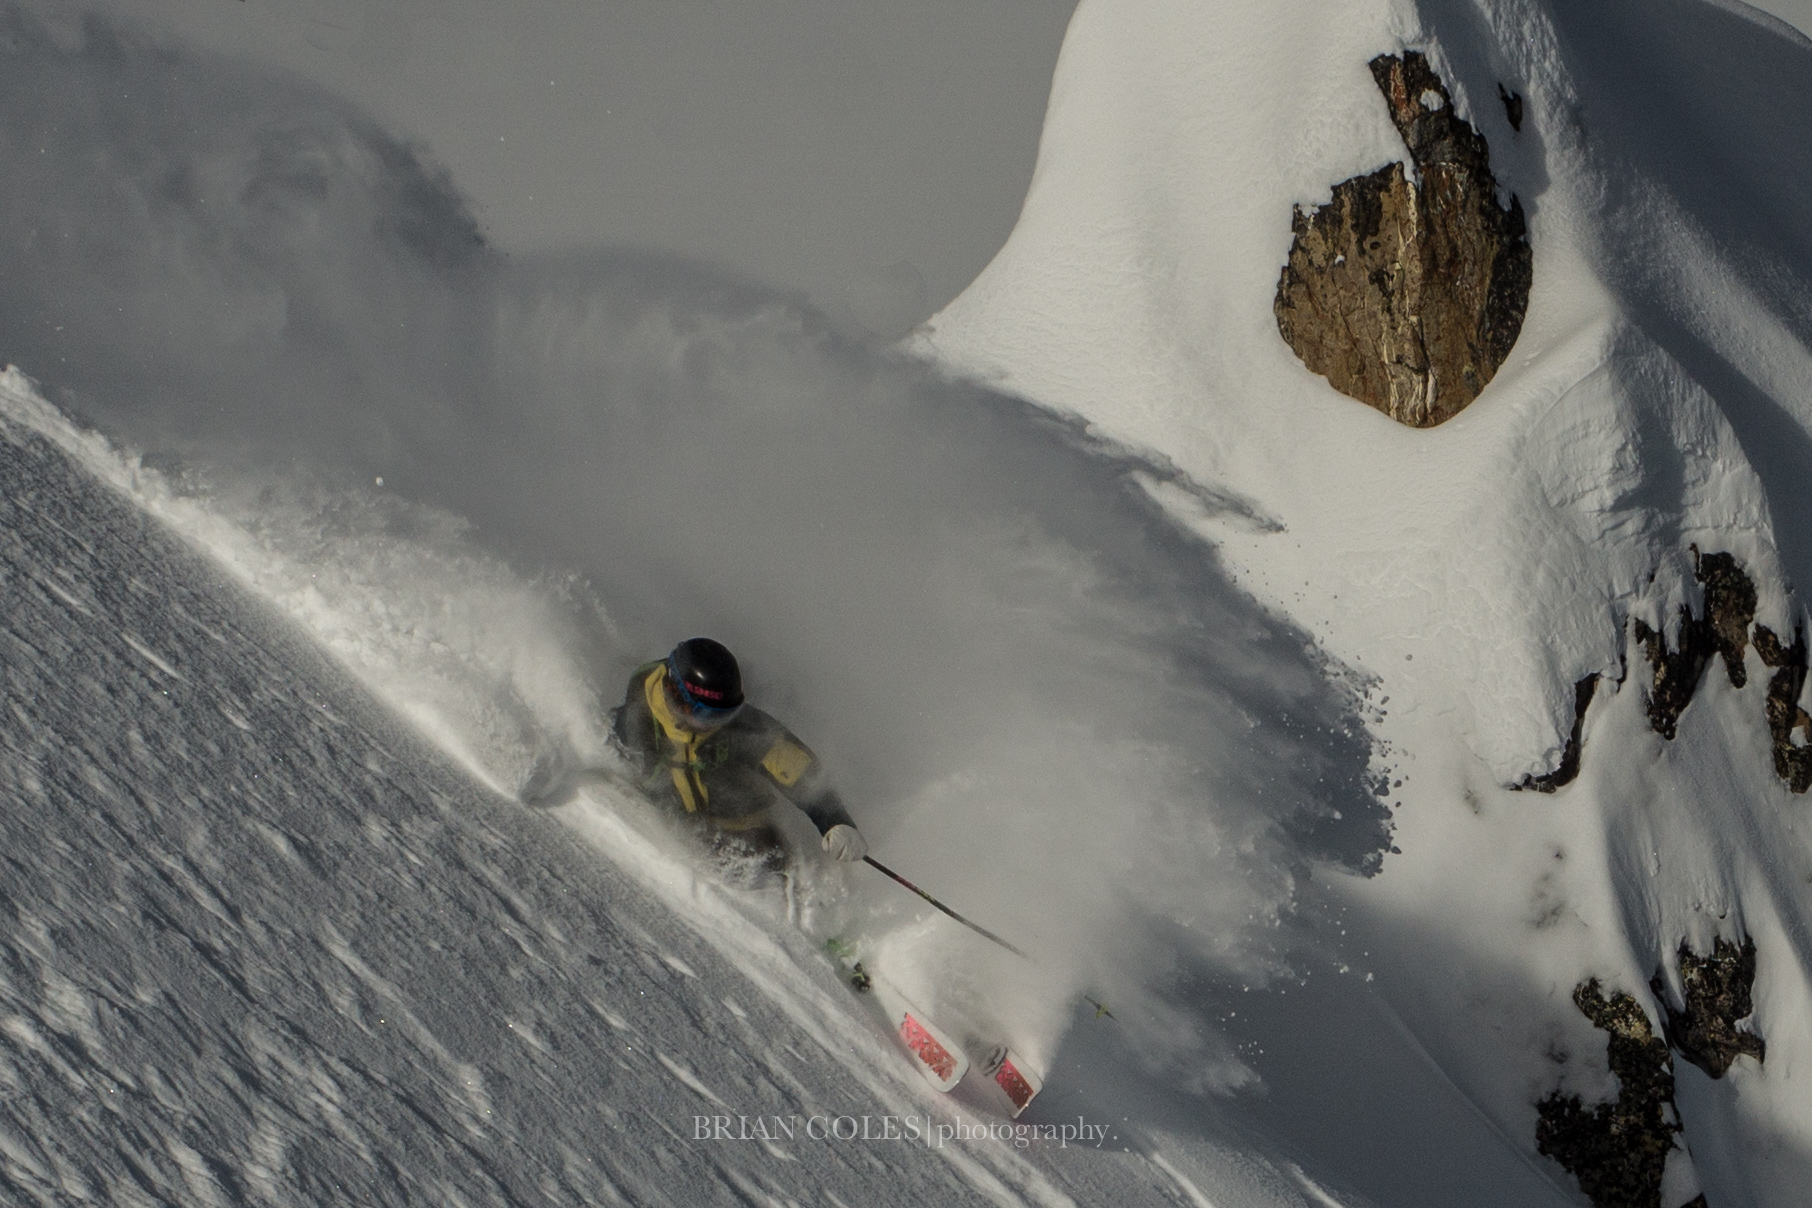 Gary, enjoying laying a deep turn while he is outside of the Rocky Mountains. P: Brian Coles